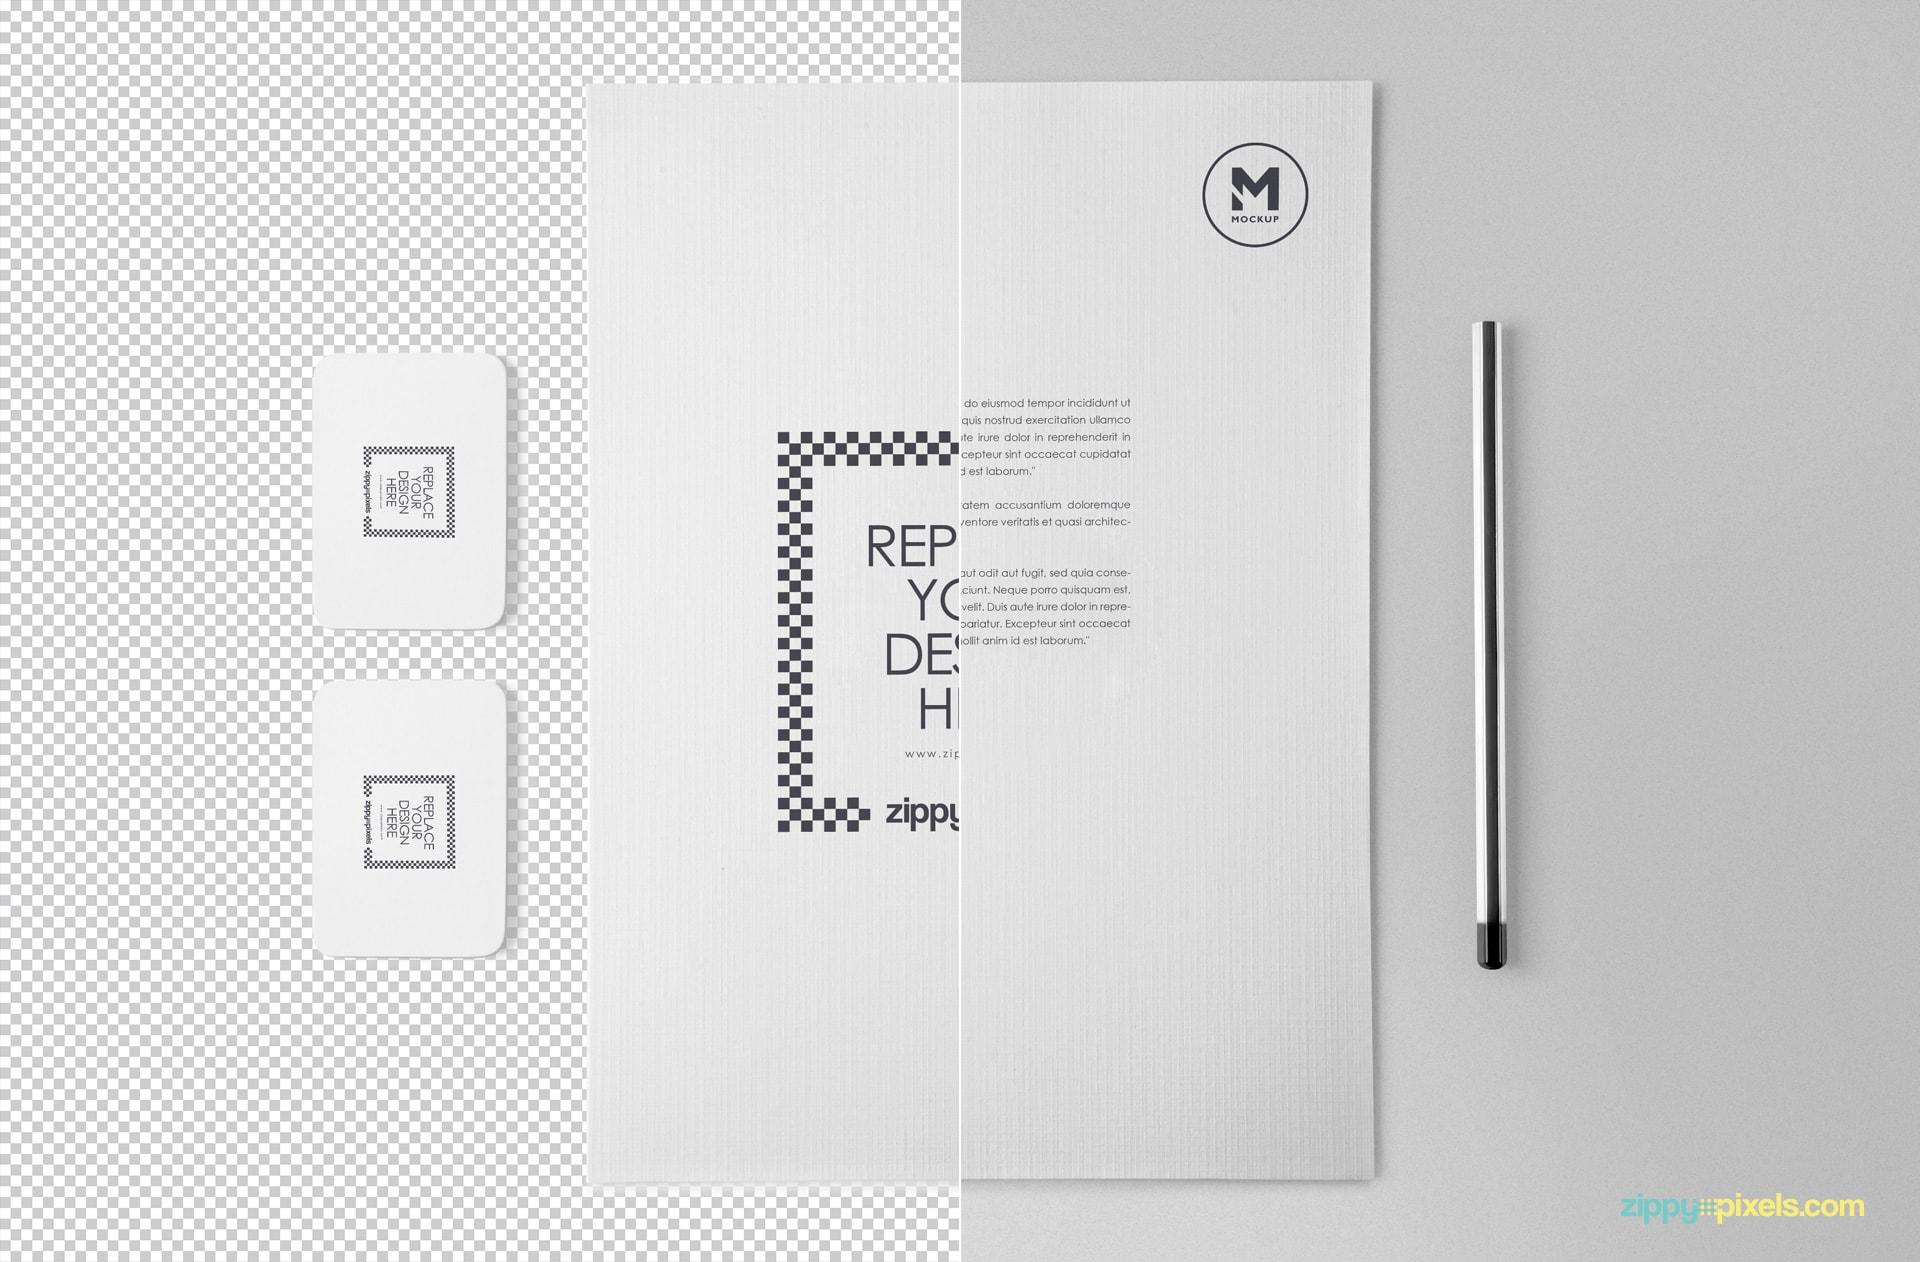 free customizable stationery mockup psd